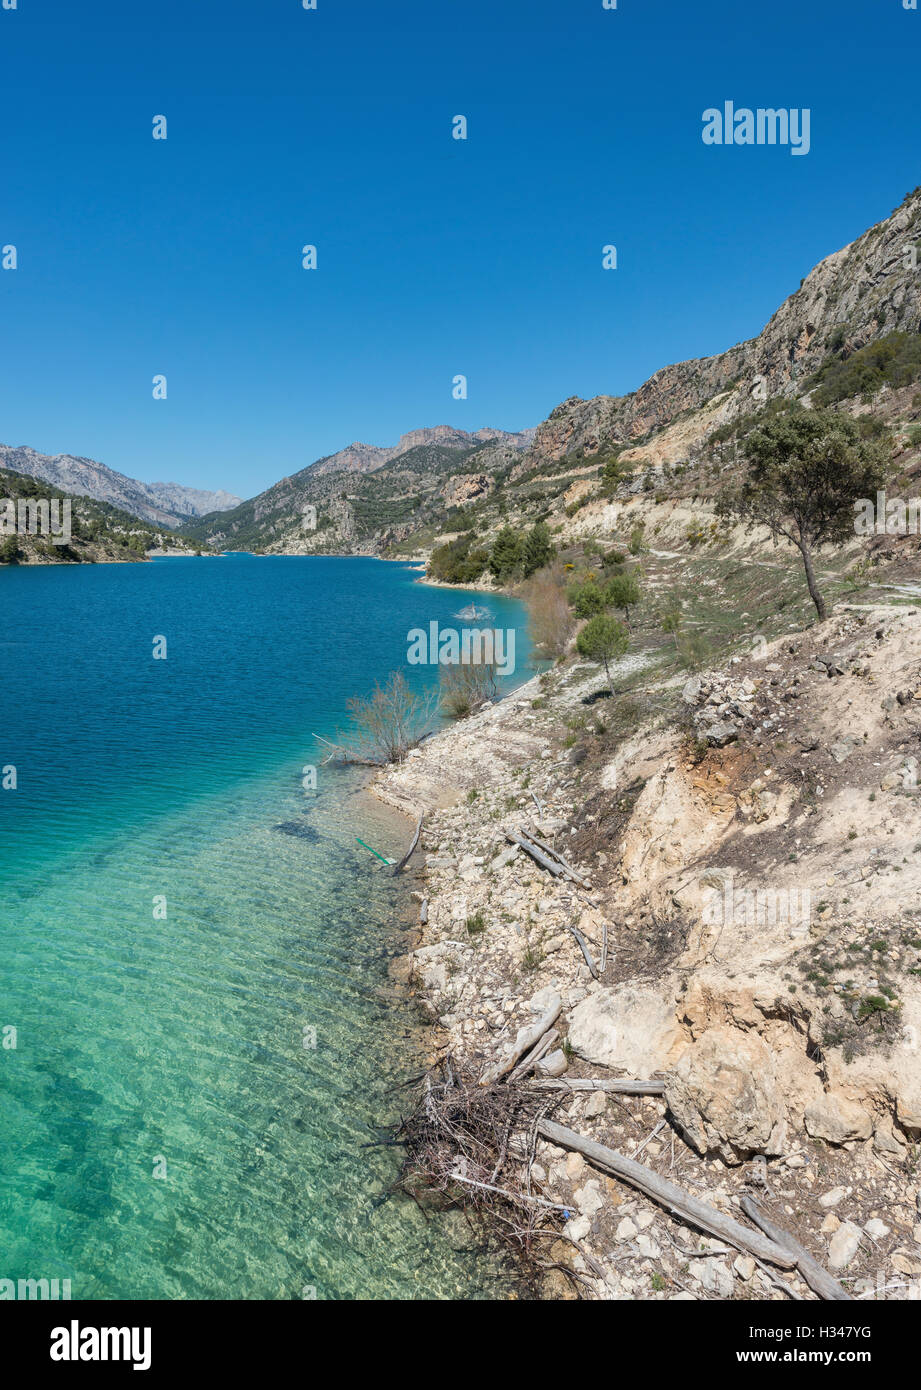 El Portillo Reservoir, Castril, Granada Province, Andalusia, Spain Stock Photo